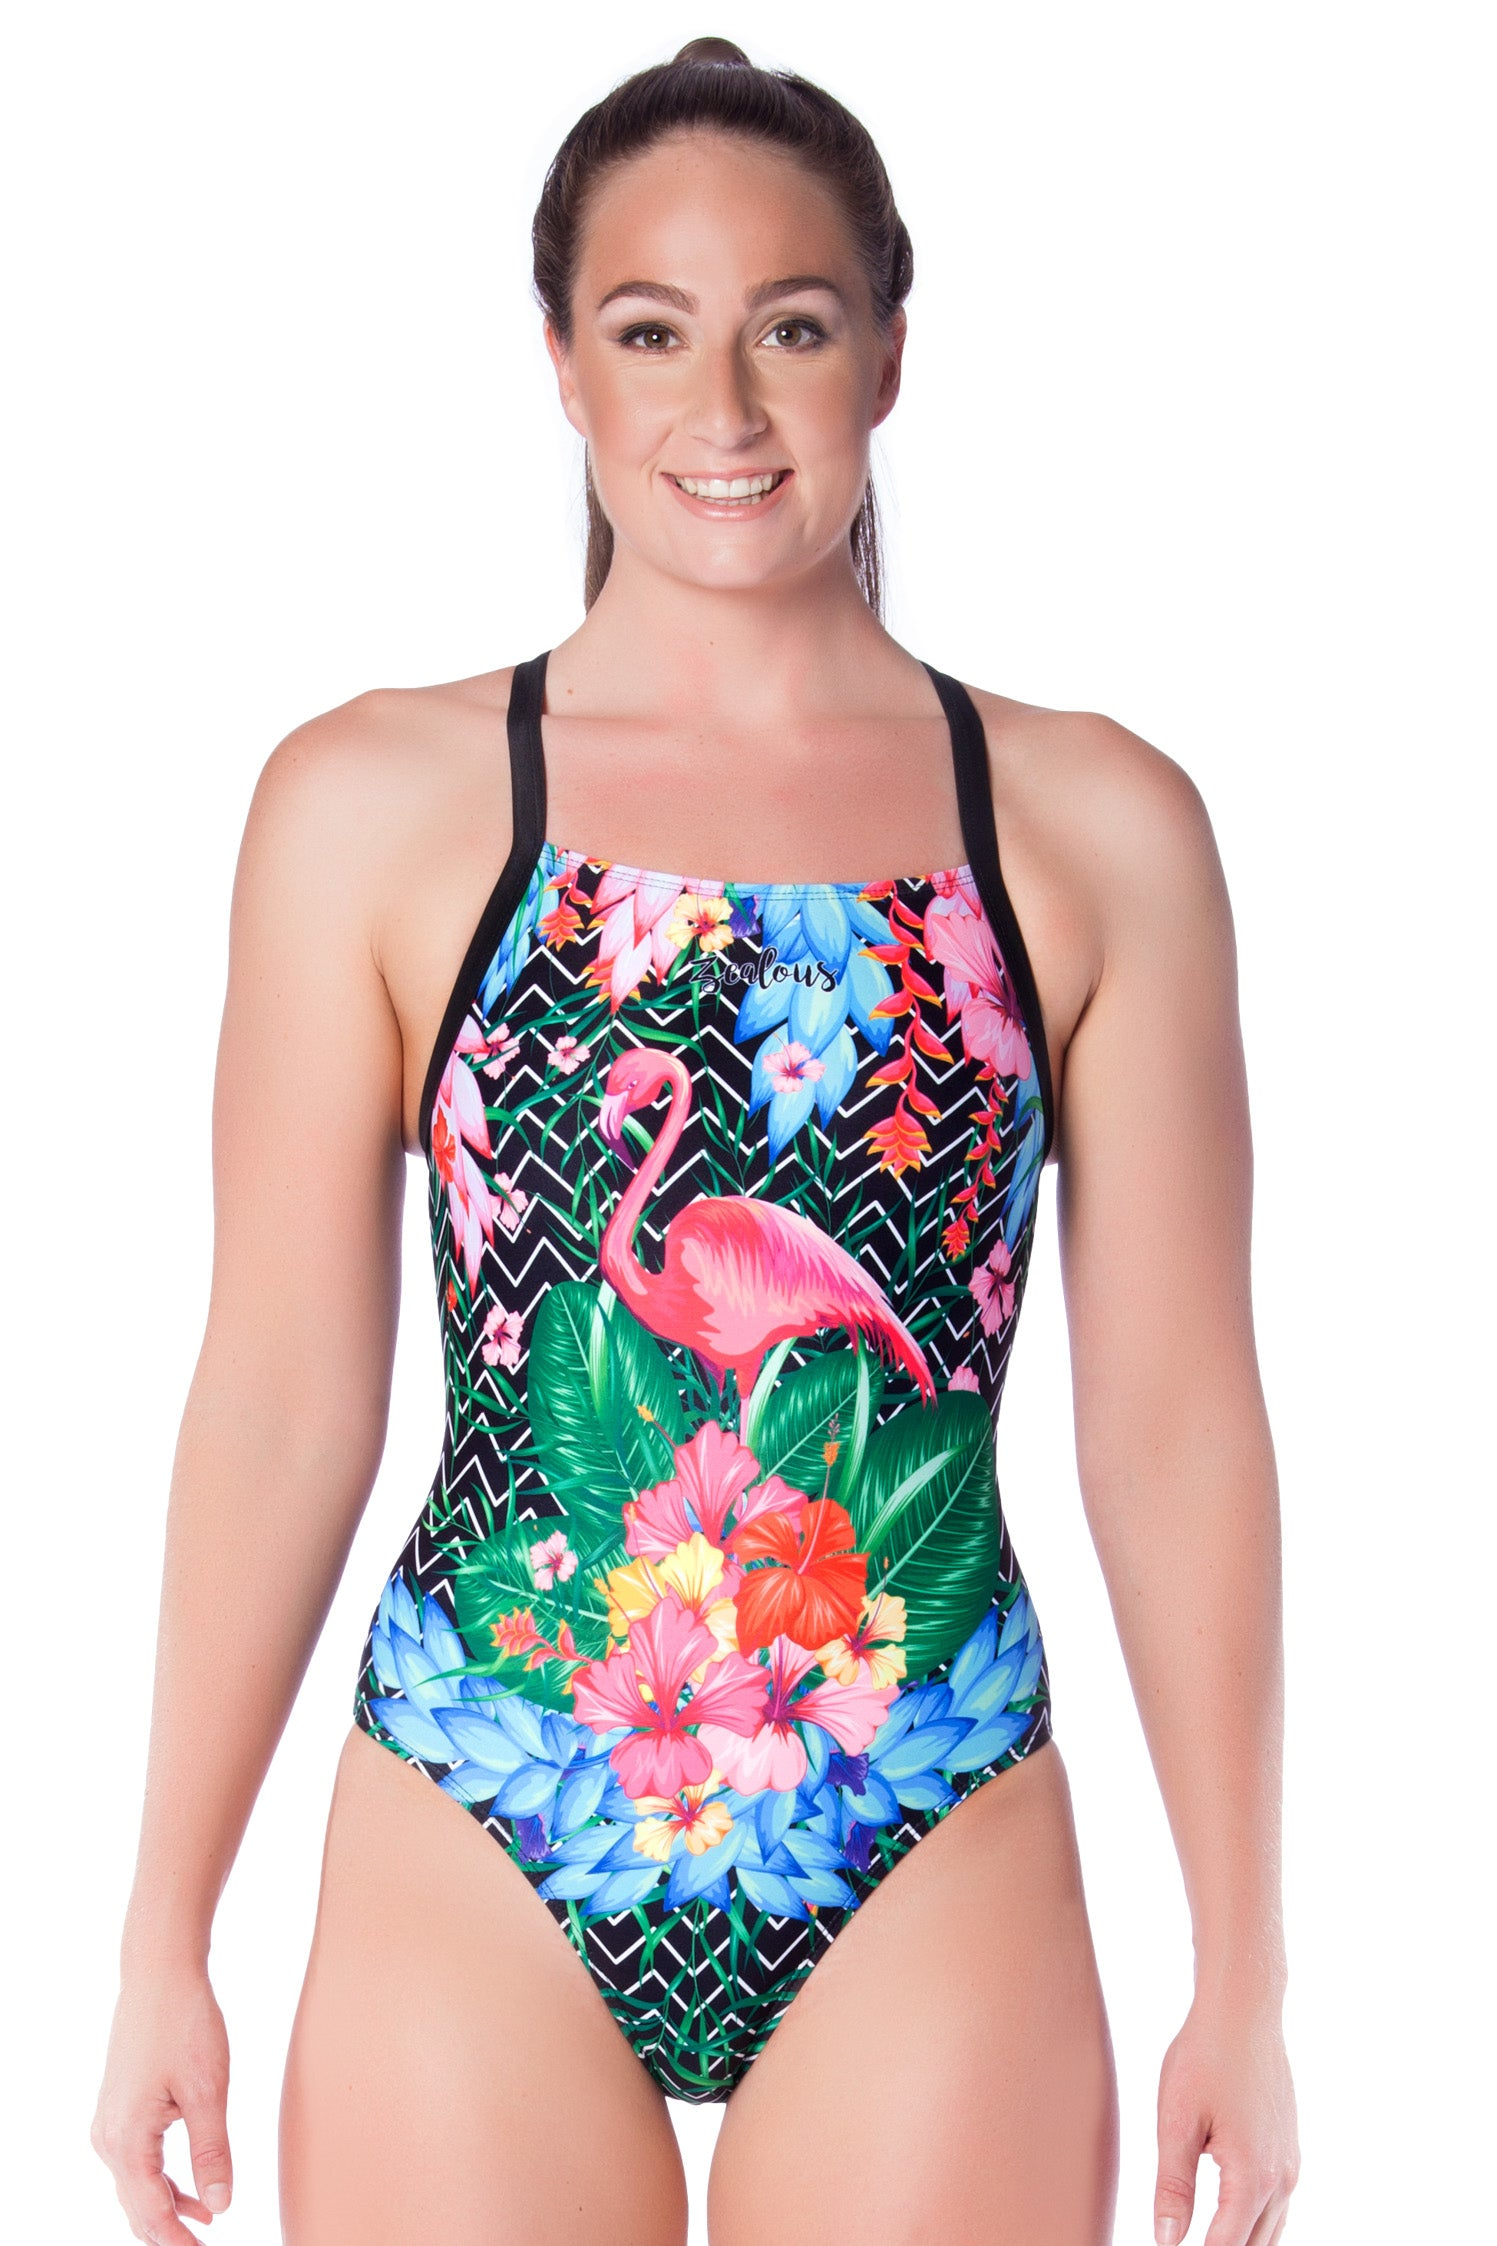 Flamingo Frenzy Ladies Racers - Shop Zealous Training Swimwear